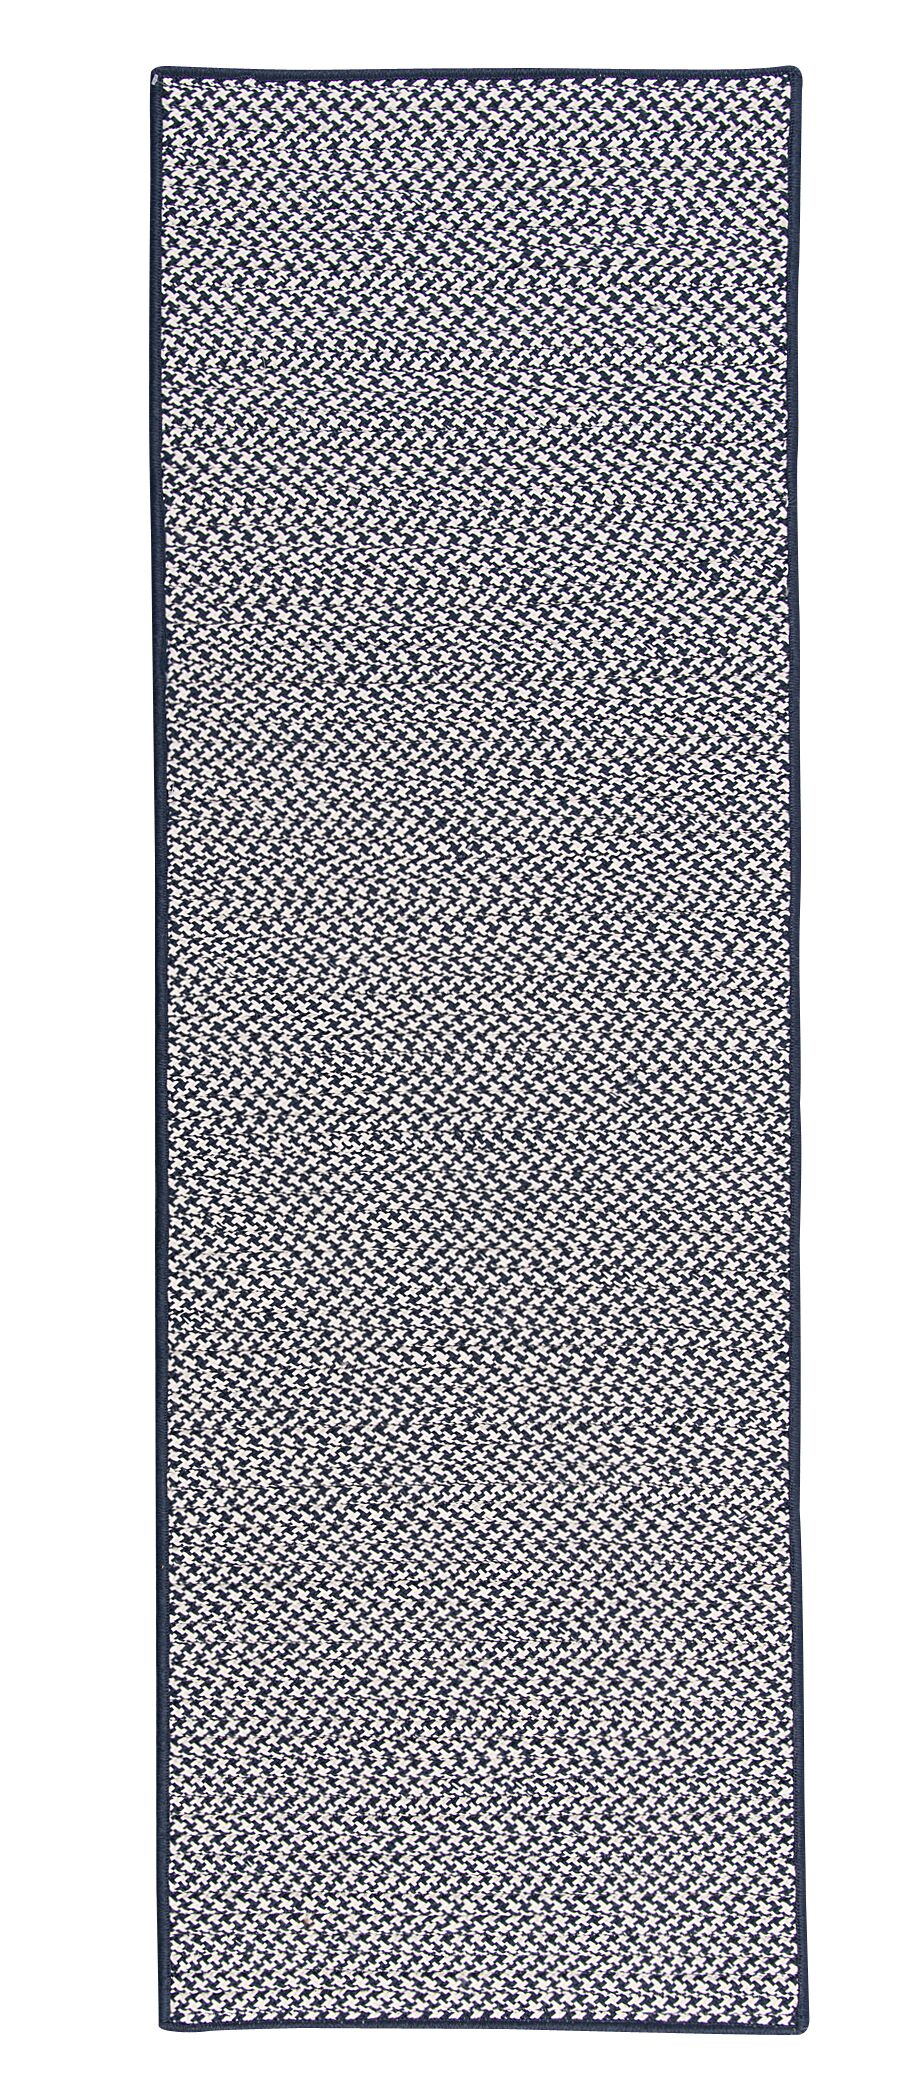 Duane Hand-Braided Blue Indoor/Outdoor Area Rug Rug Size: Runner 2'6